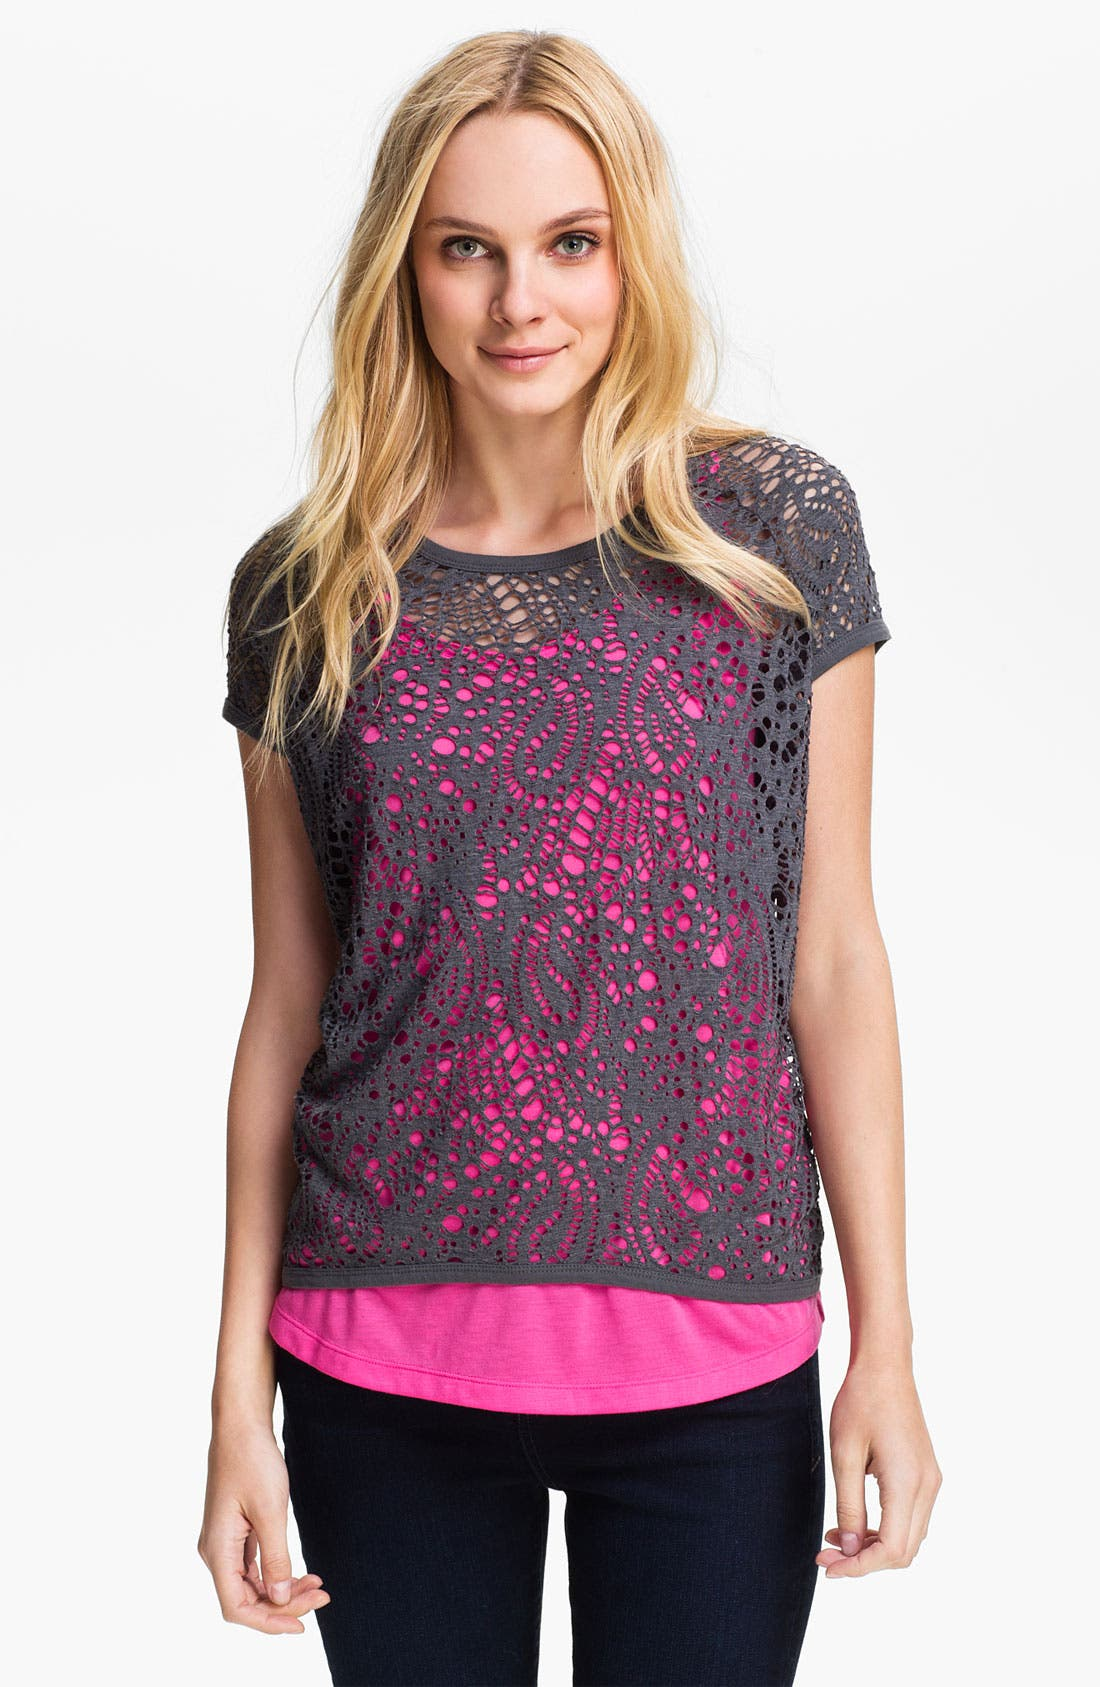 Main Image - Two by Vince Camuto Perforated Paisley Top